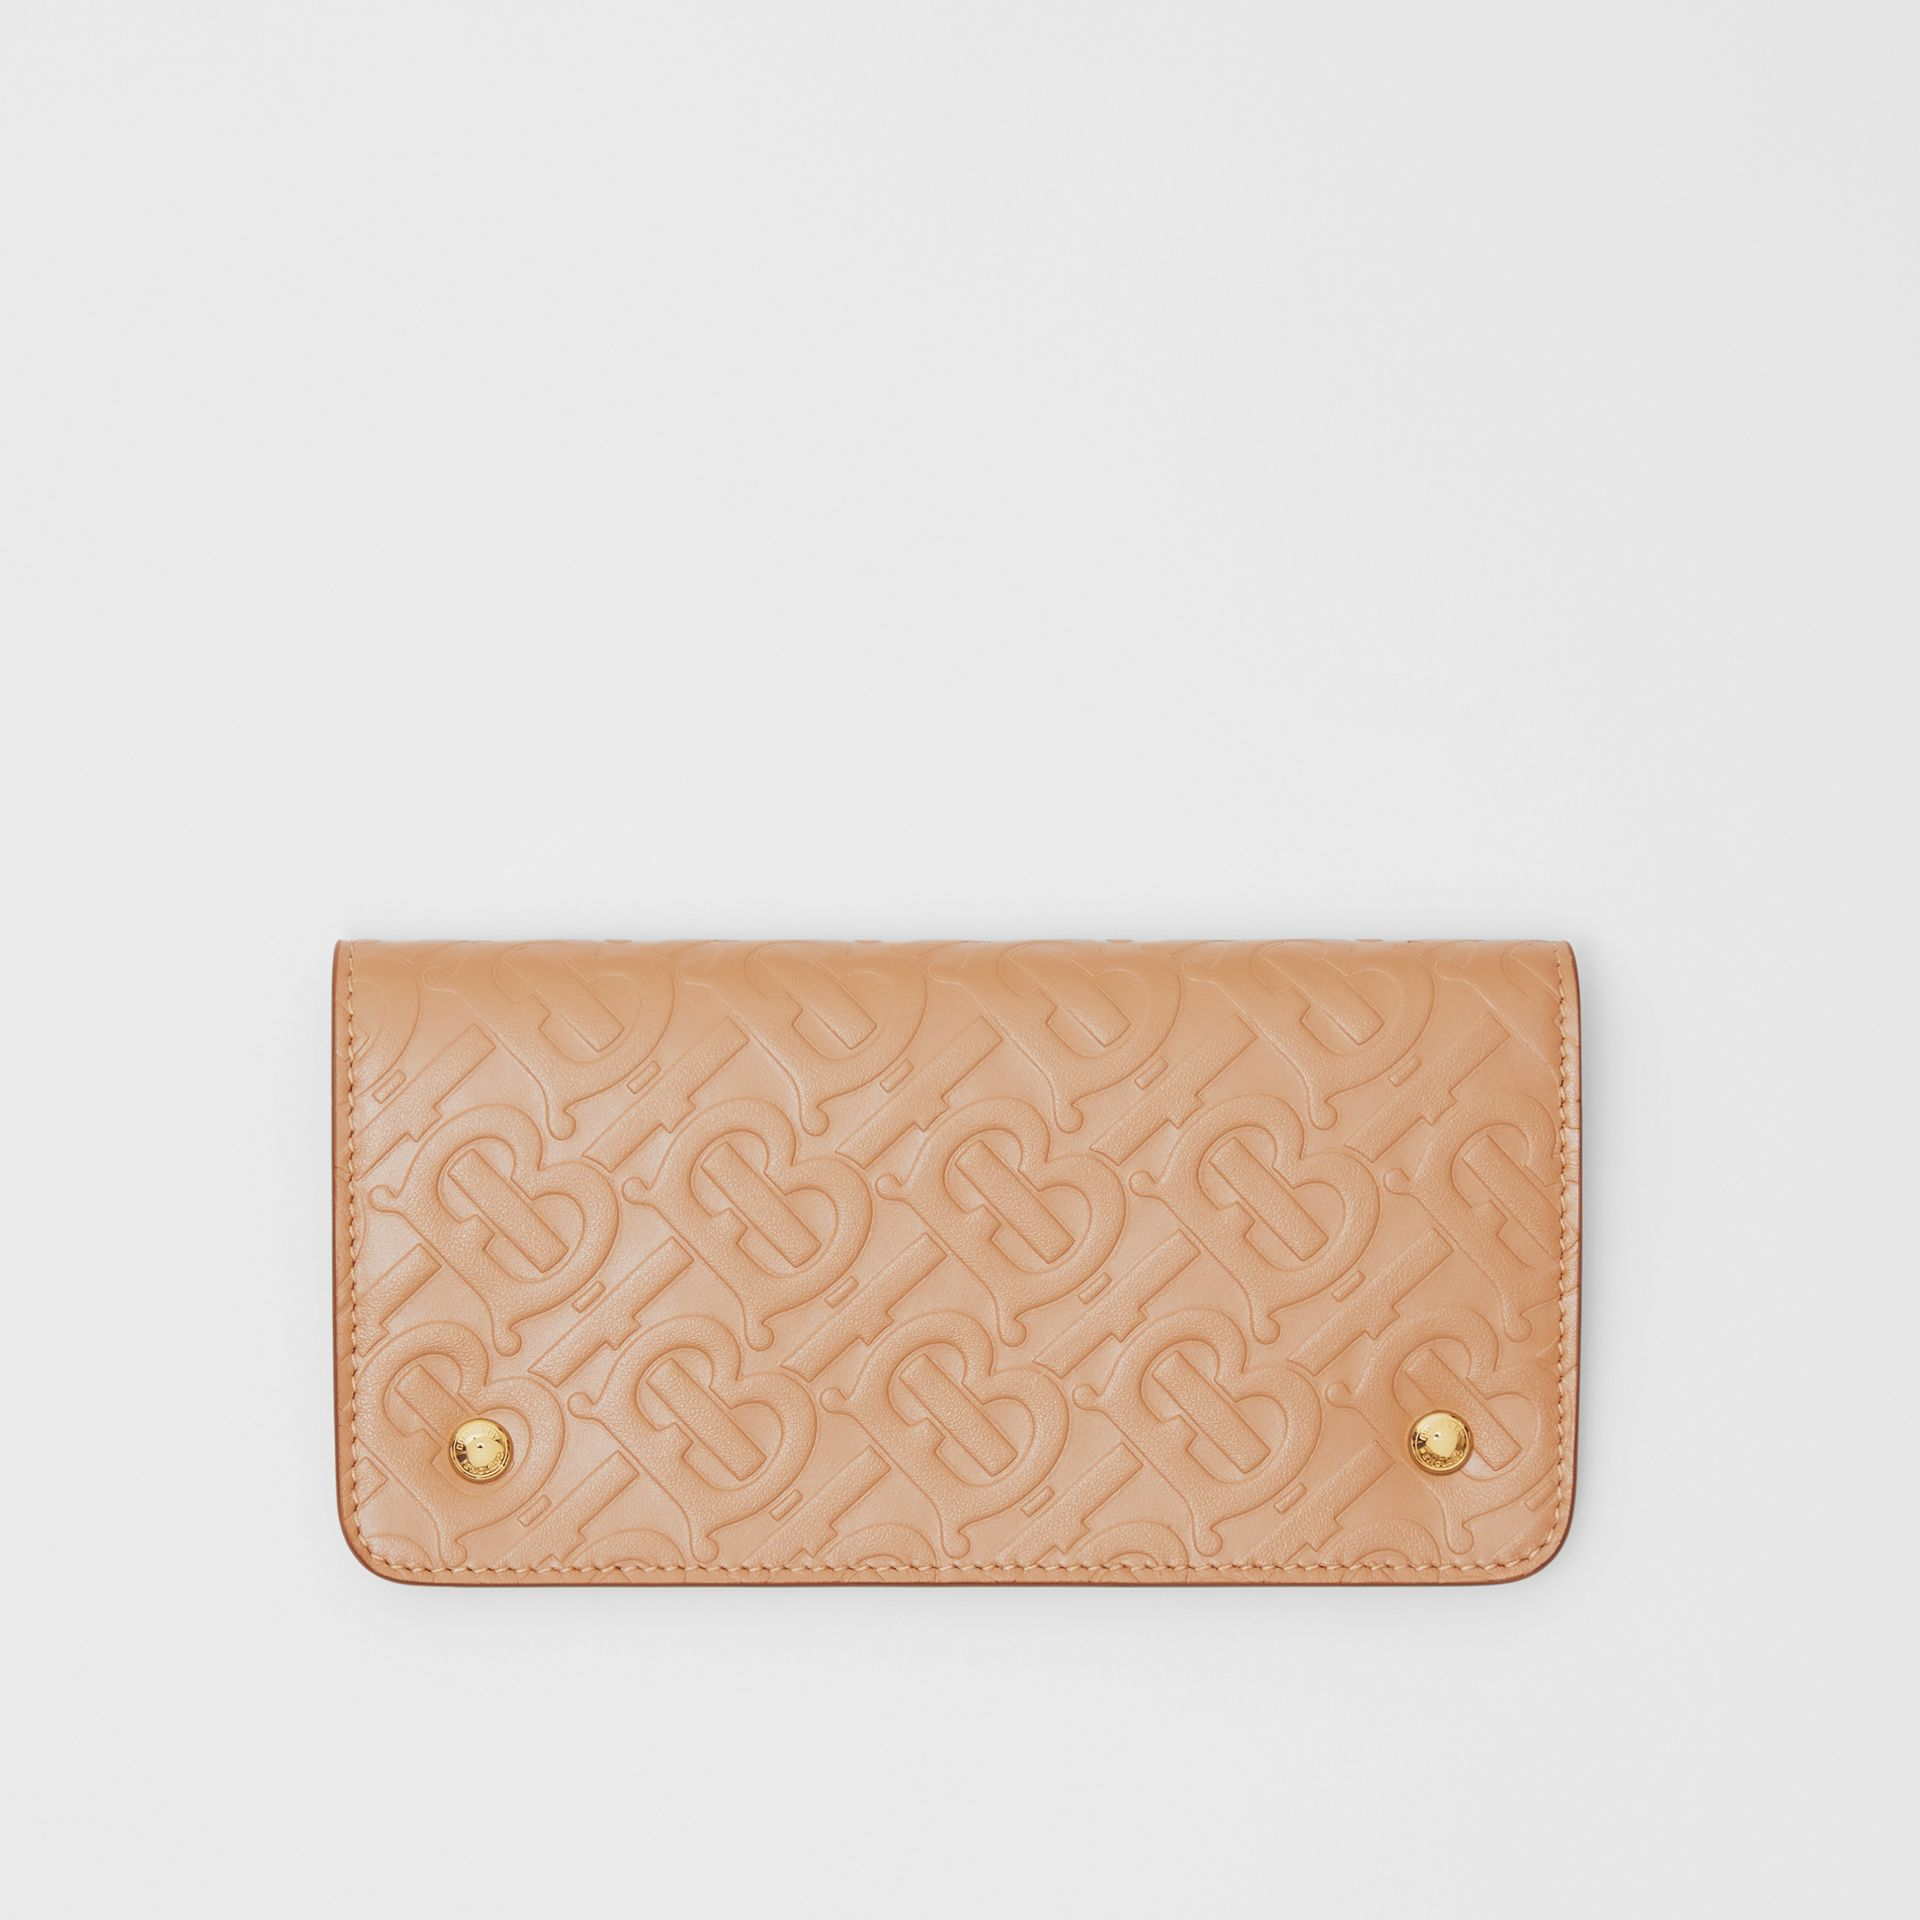 Monogram Leather Phone Wallet in Light Camel - Women | Burberry United Kingdom - gallery image 0